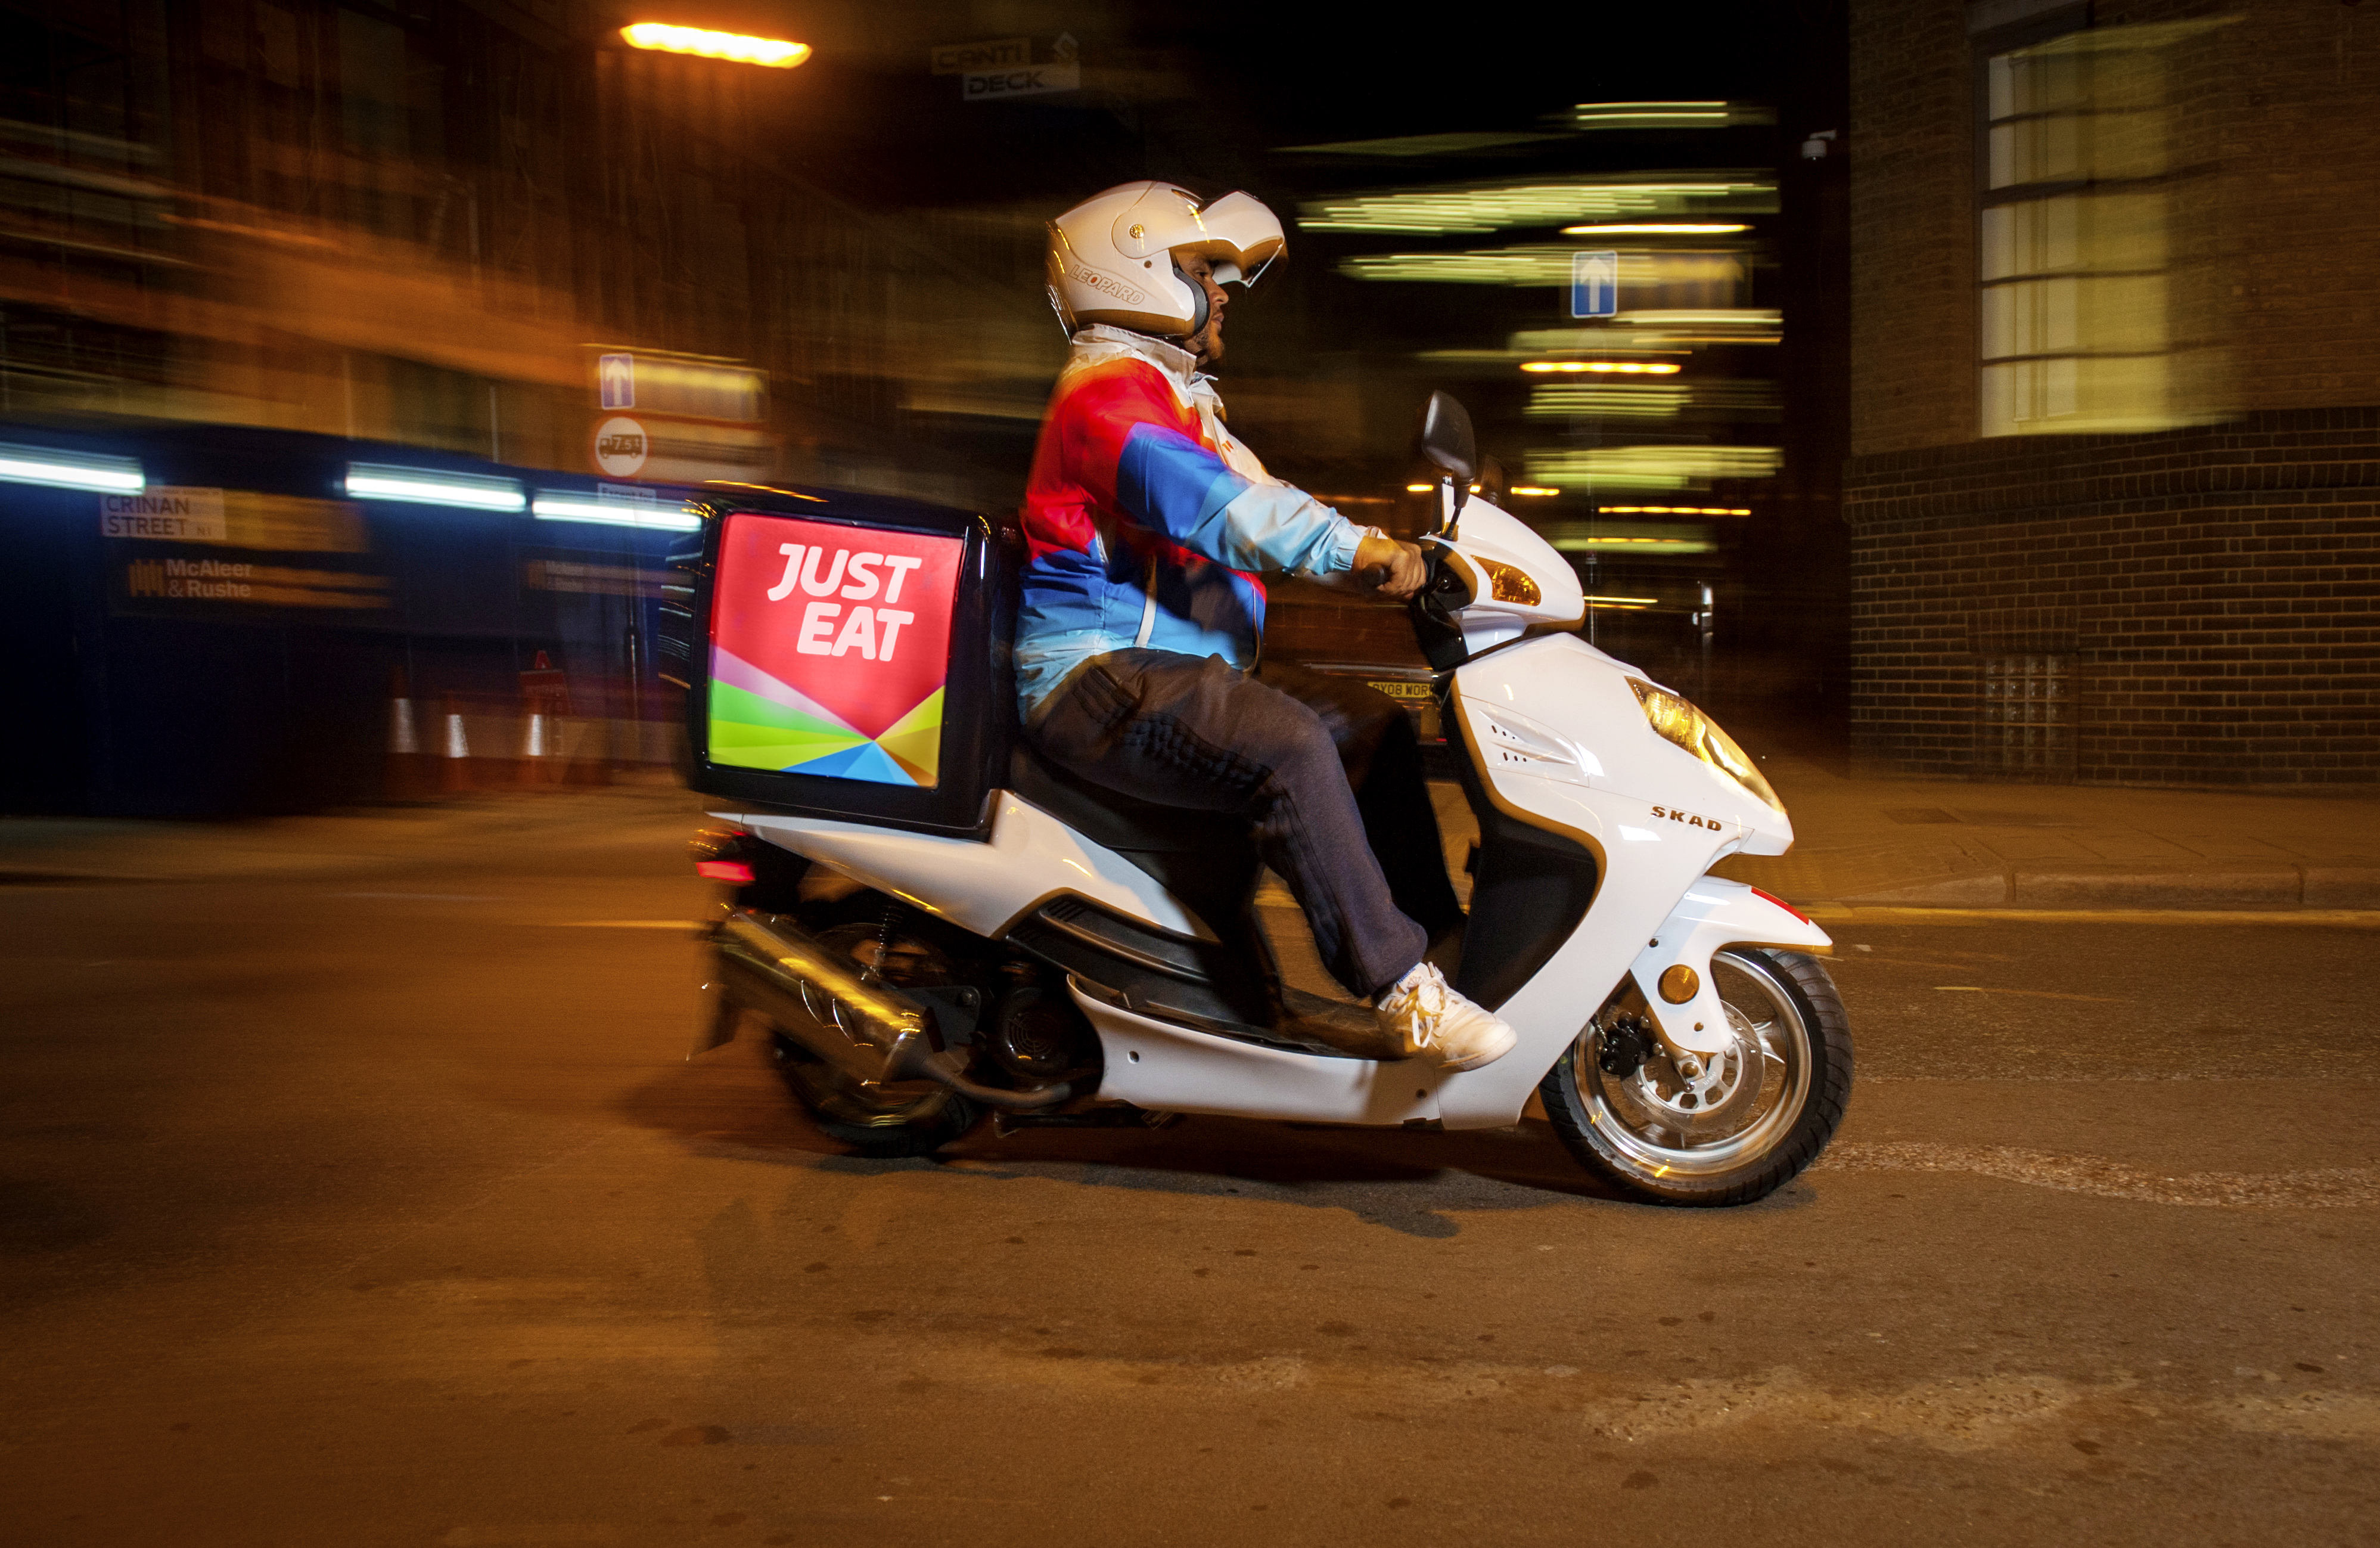 just-eat-driver-scooter